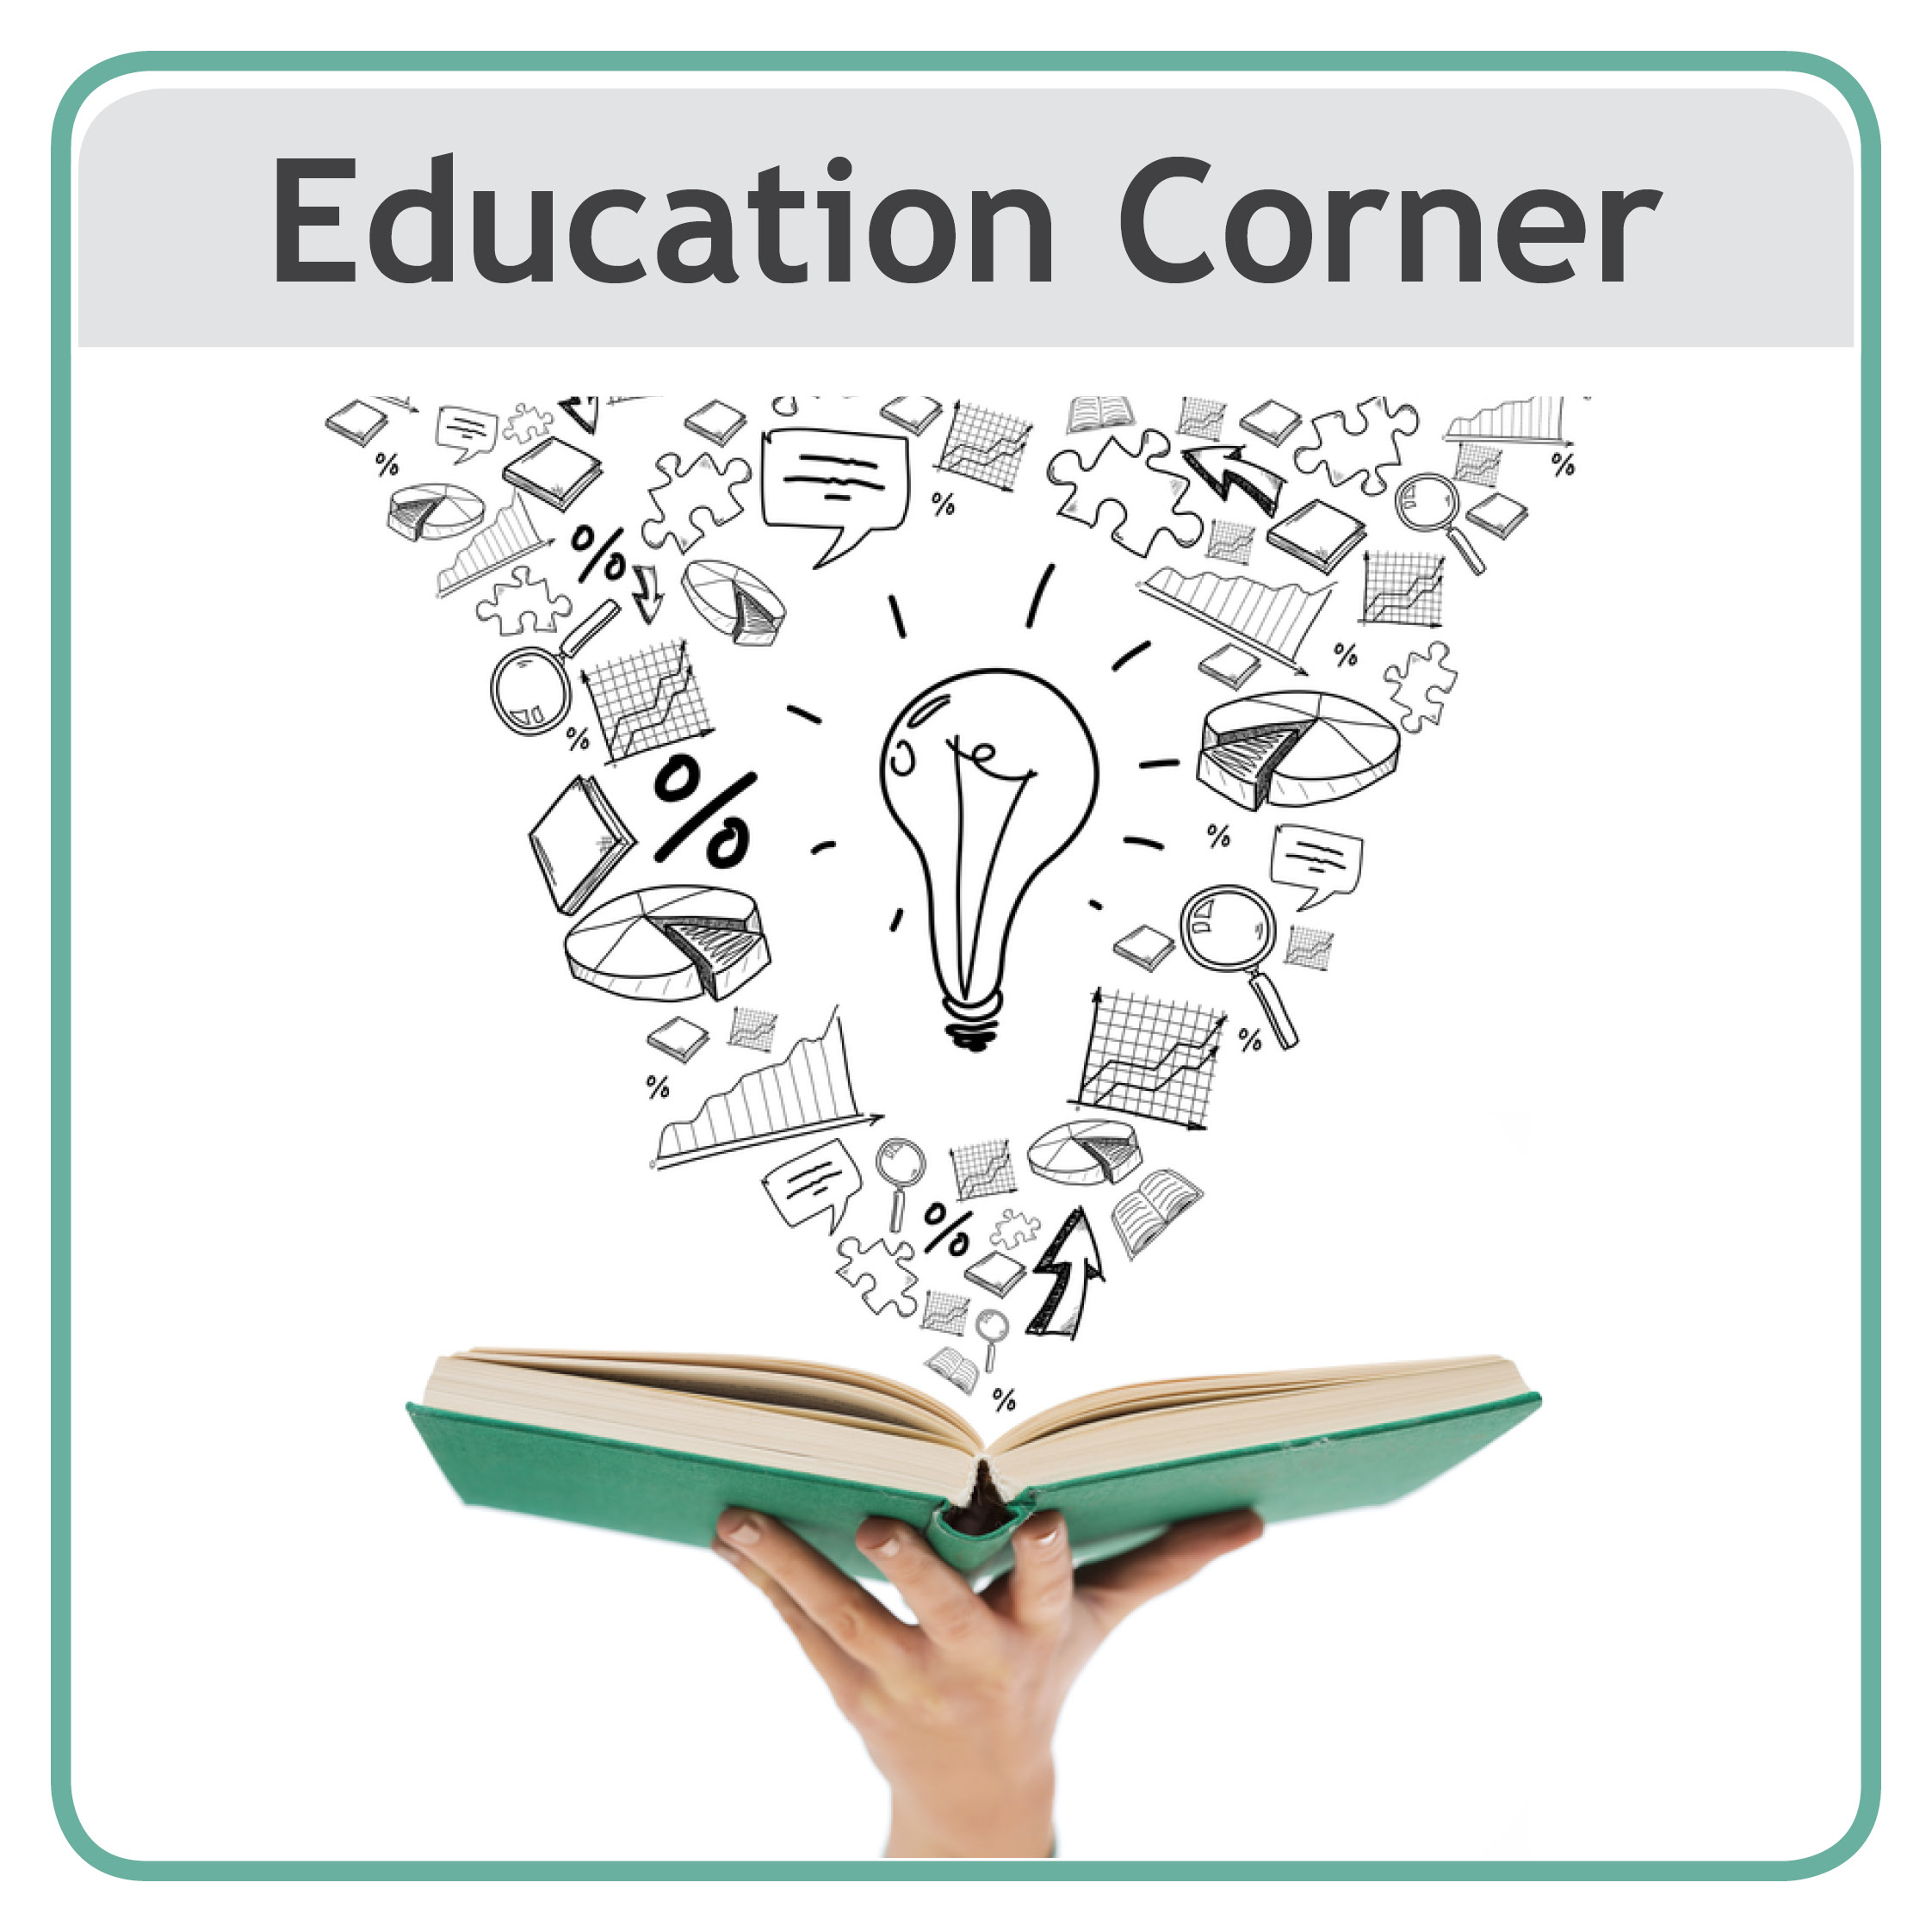 EDUCATION CORNER ICON 2019.jpg